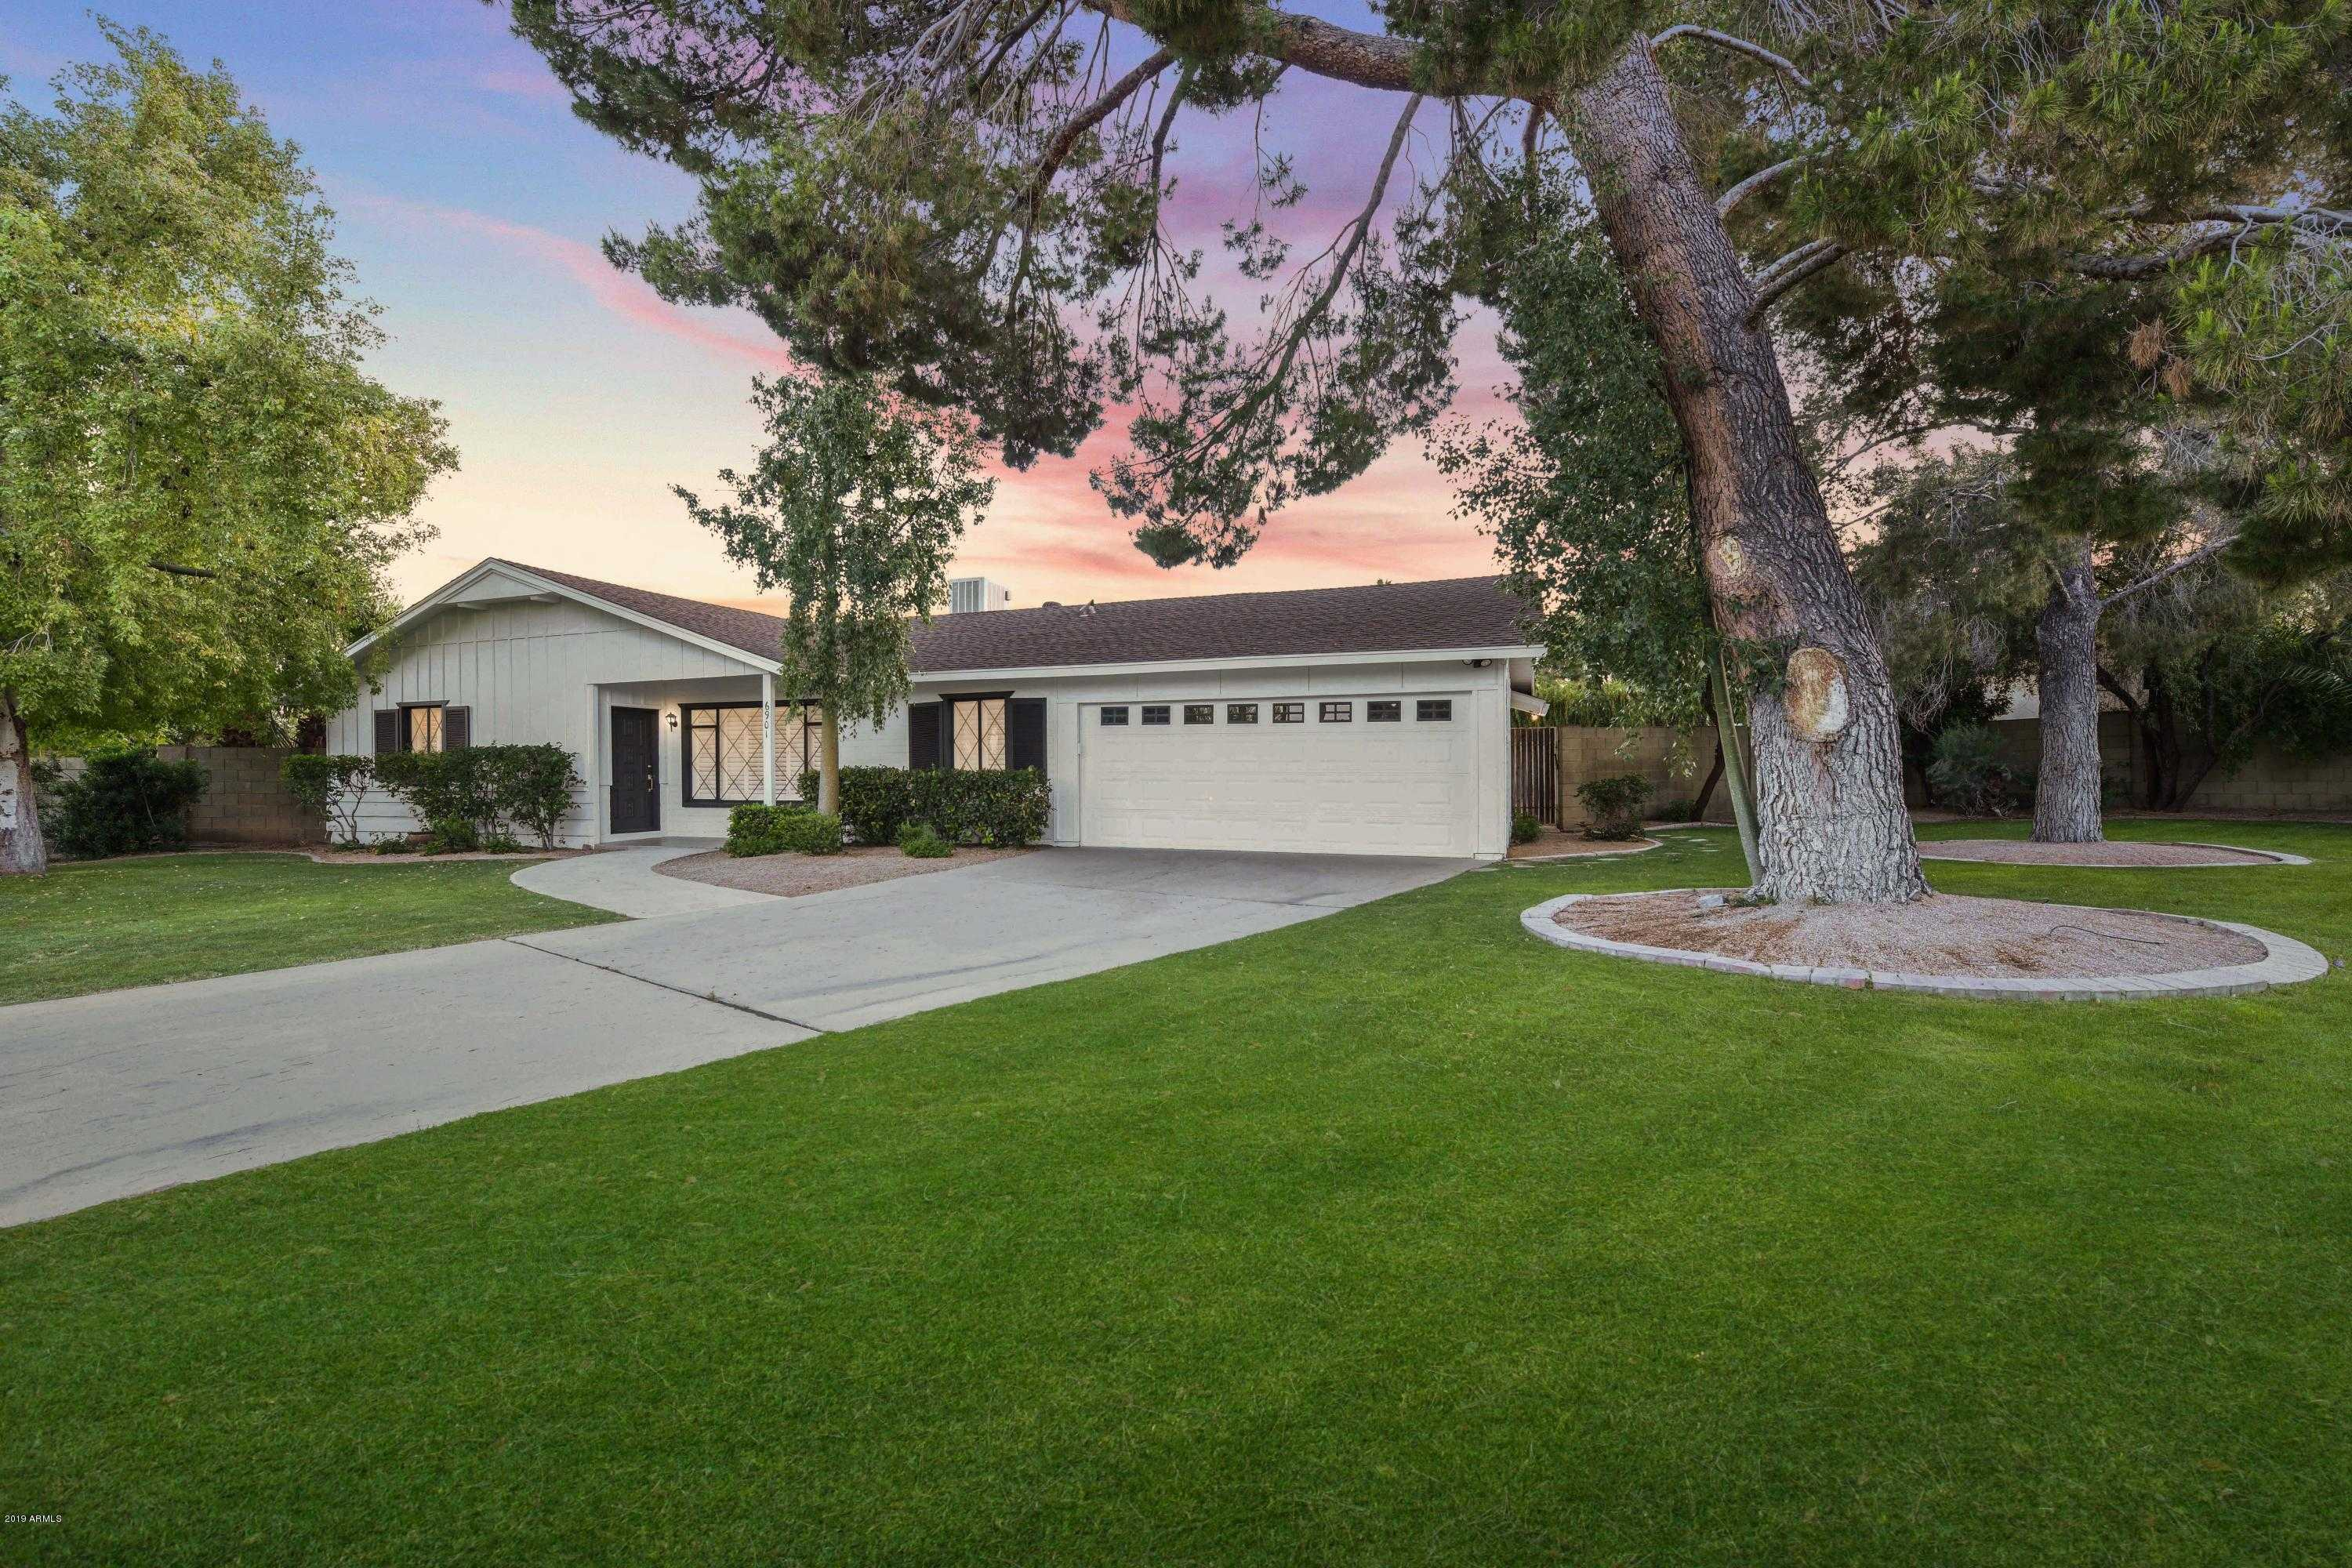 $825,000 - 3Br/2Ba - Home for Sale in Orange Valley Estates 3, Paradise Valley